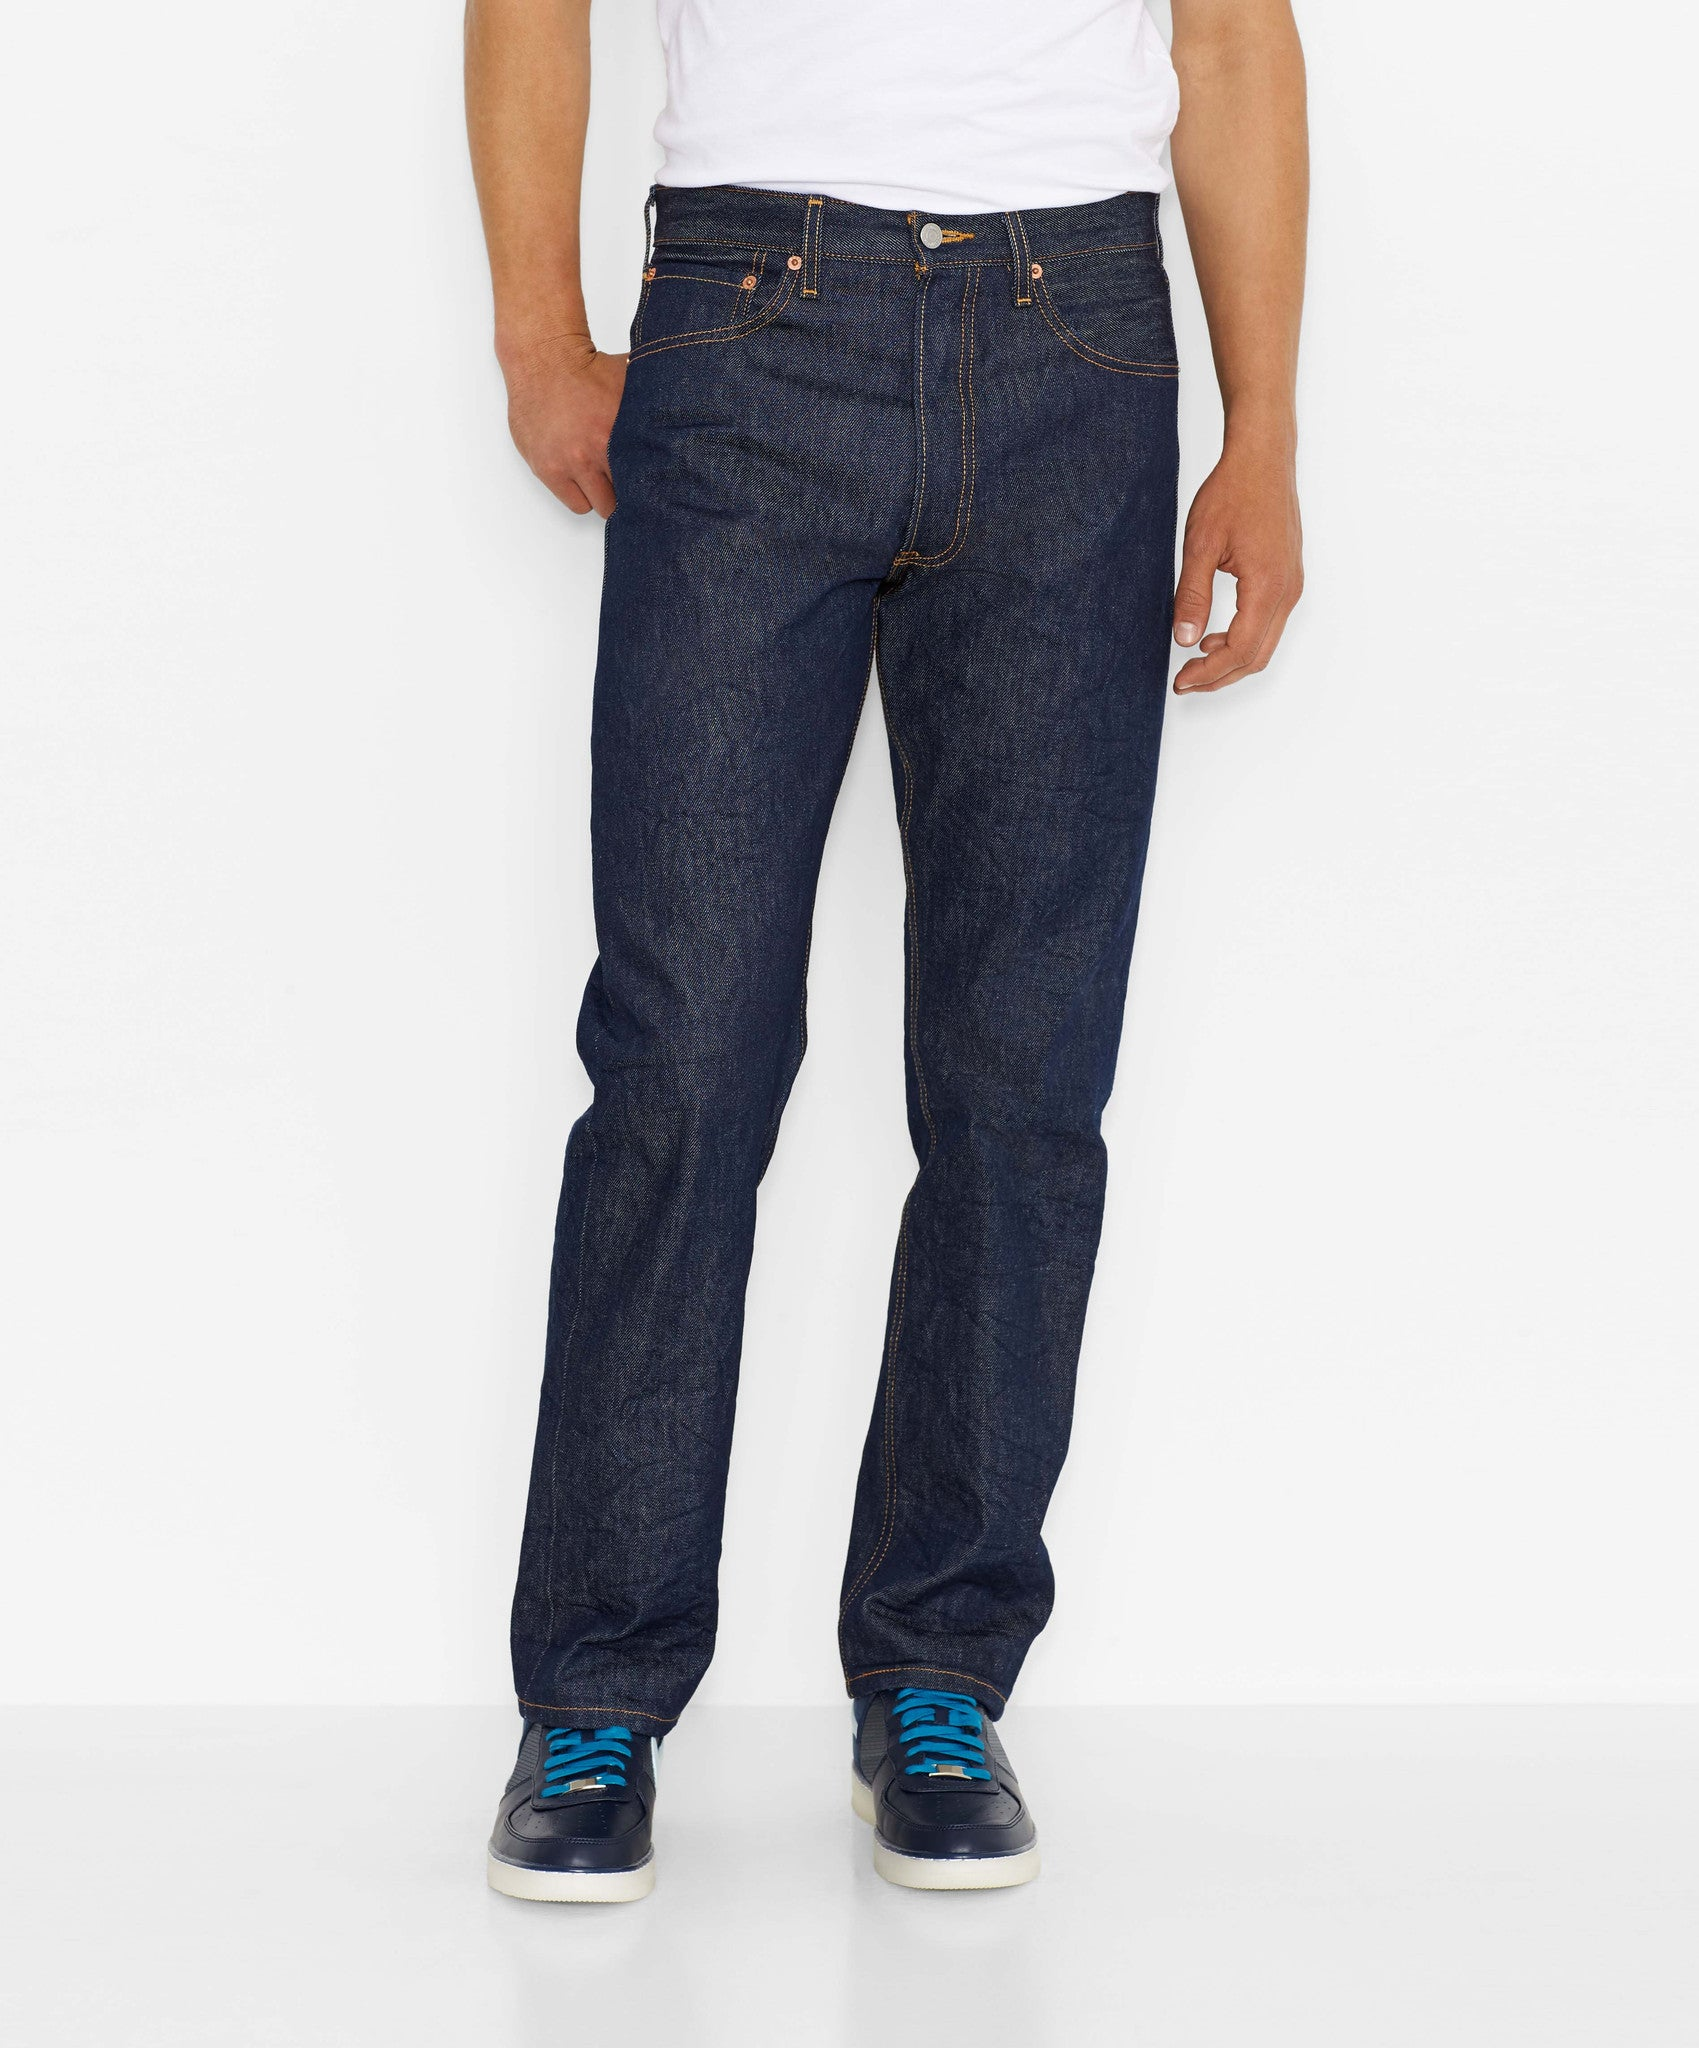 Oklahoma Herren Jeans 38/32 Clothing, Shoes & Accessories